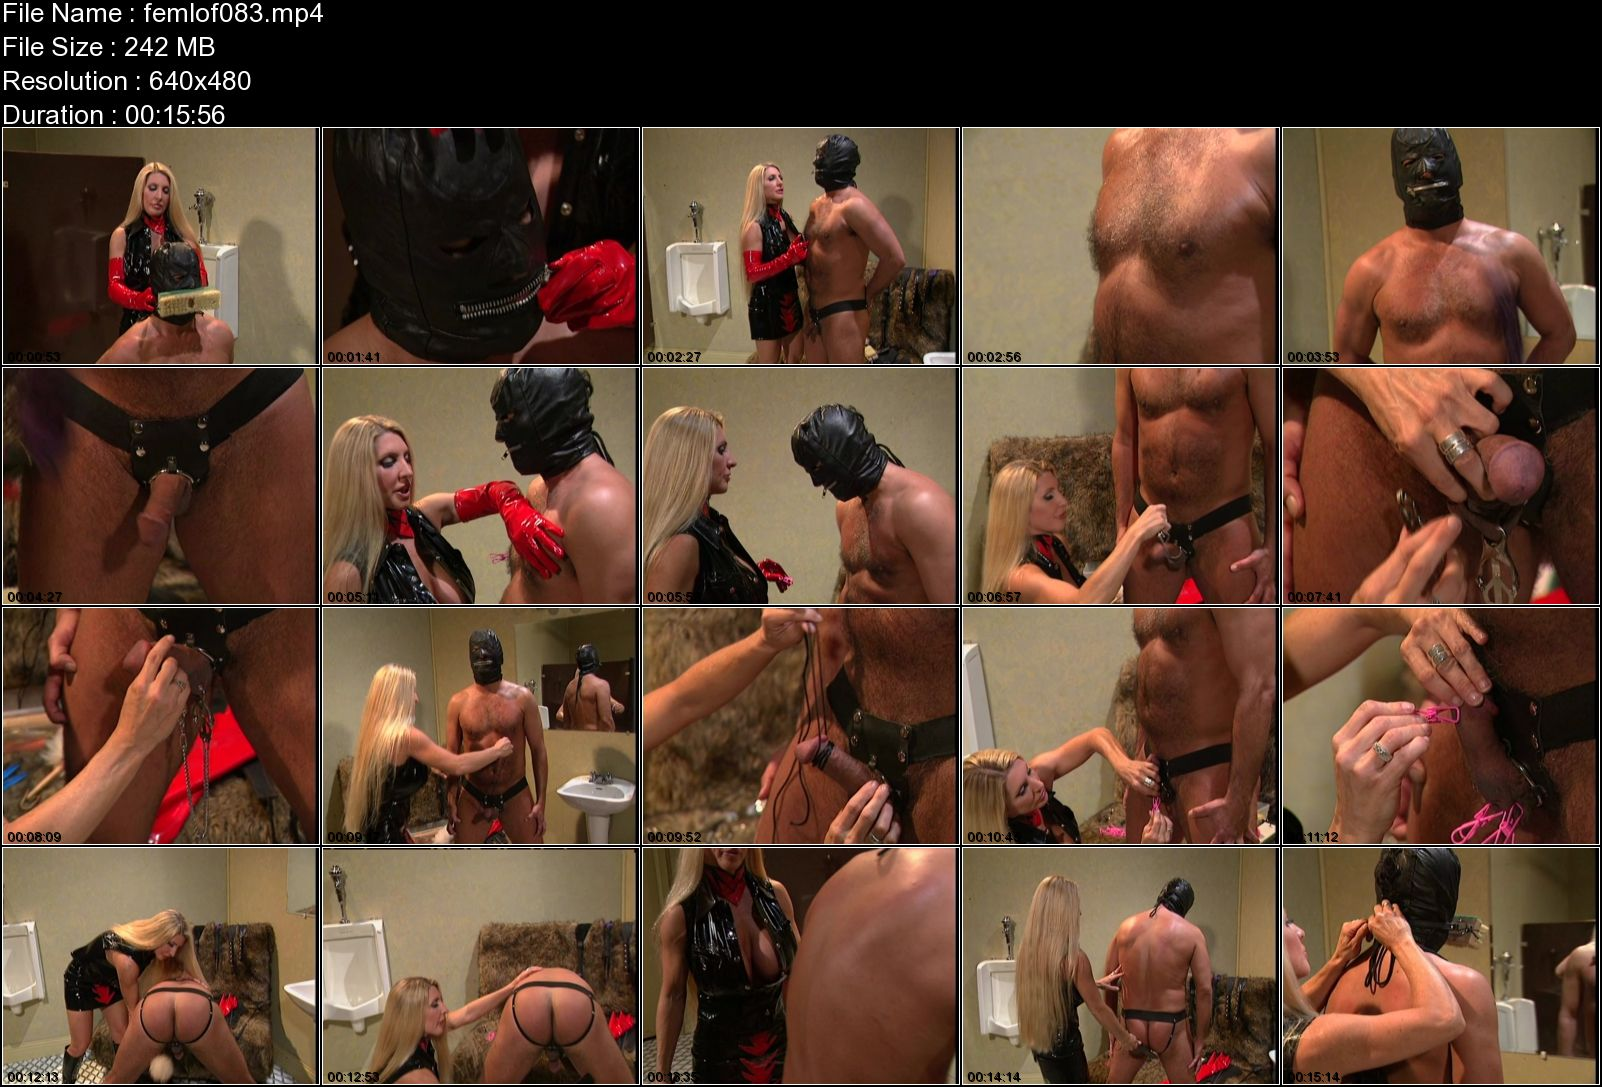 Domina In Scene: Strict blonde Mistress whips and humiliates her slave and also punishes his slave balls with multiple clamps - FEMDOMLOFT - SD/480p/MP4